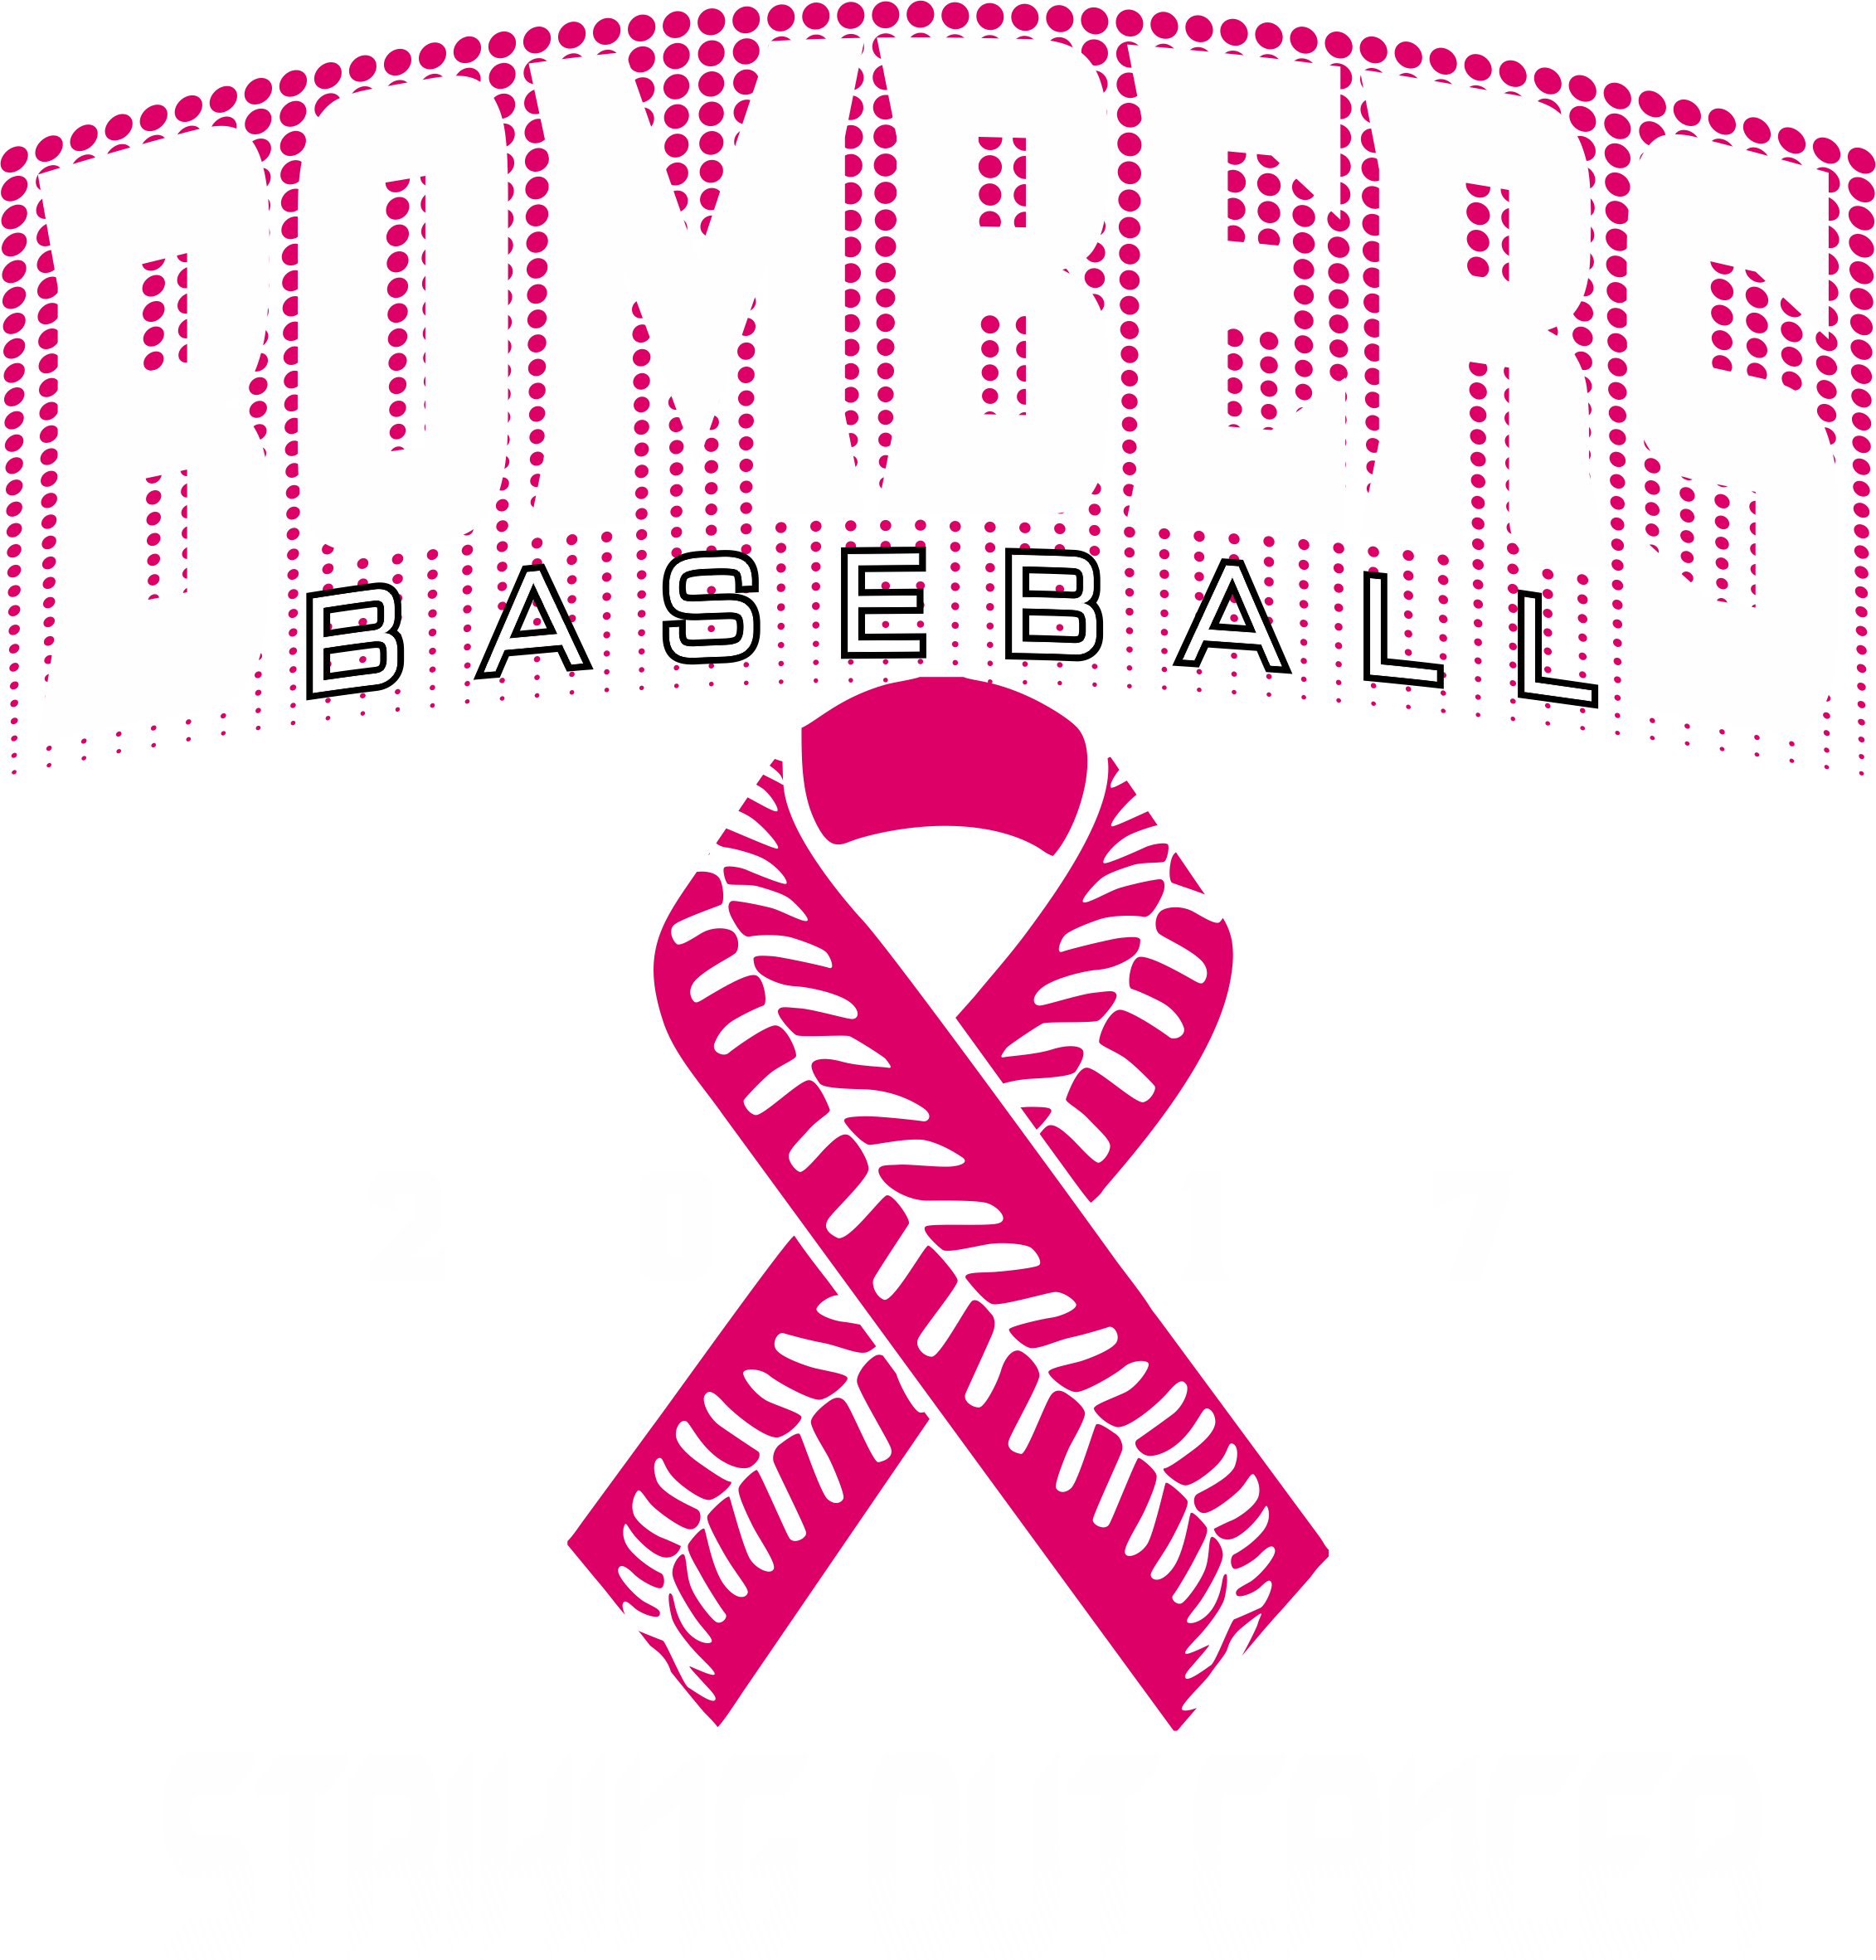 Bombers Striking Out Breast Cancer in October